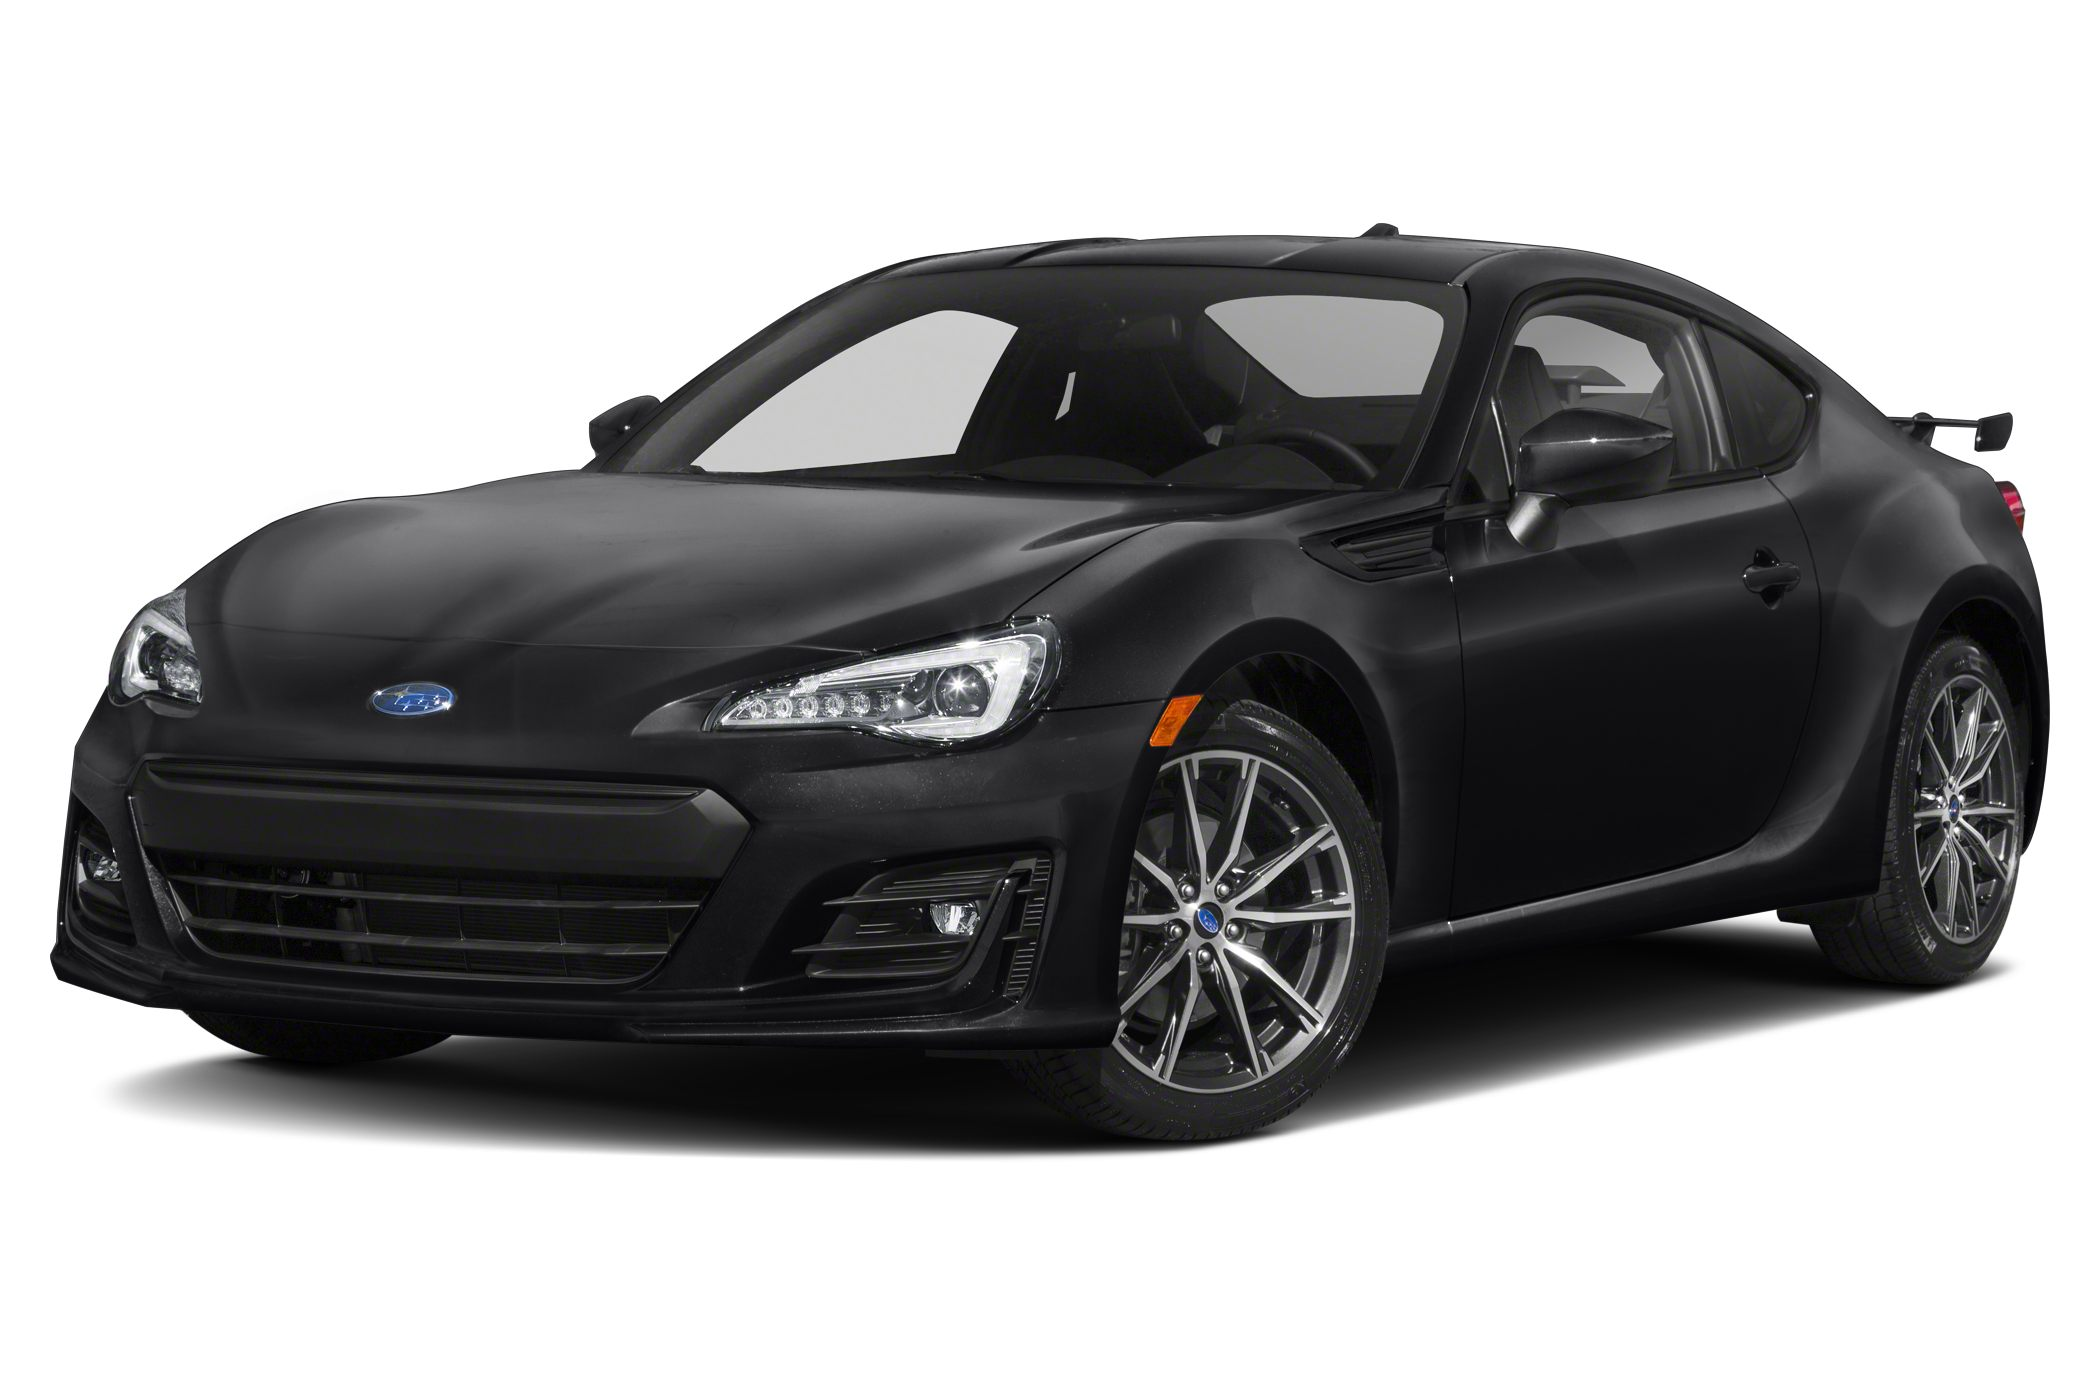 2019 Subaru BRZ Limited 2dr Rear-wheel Drive Coupe